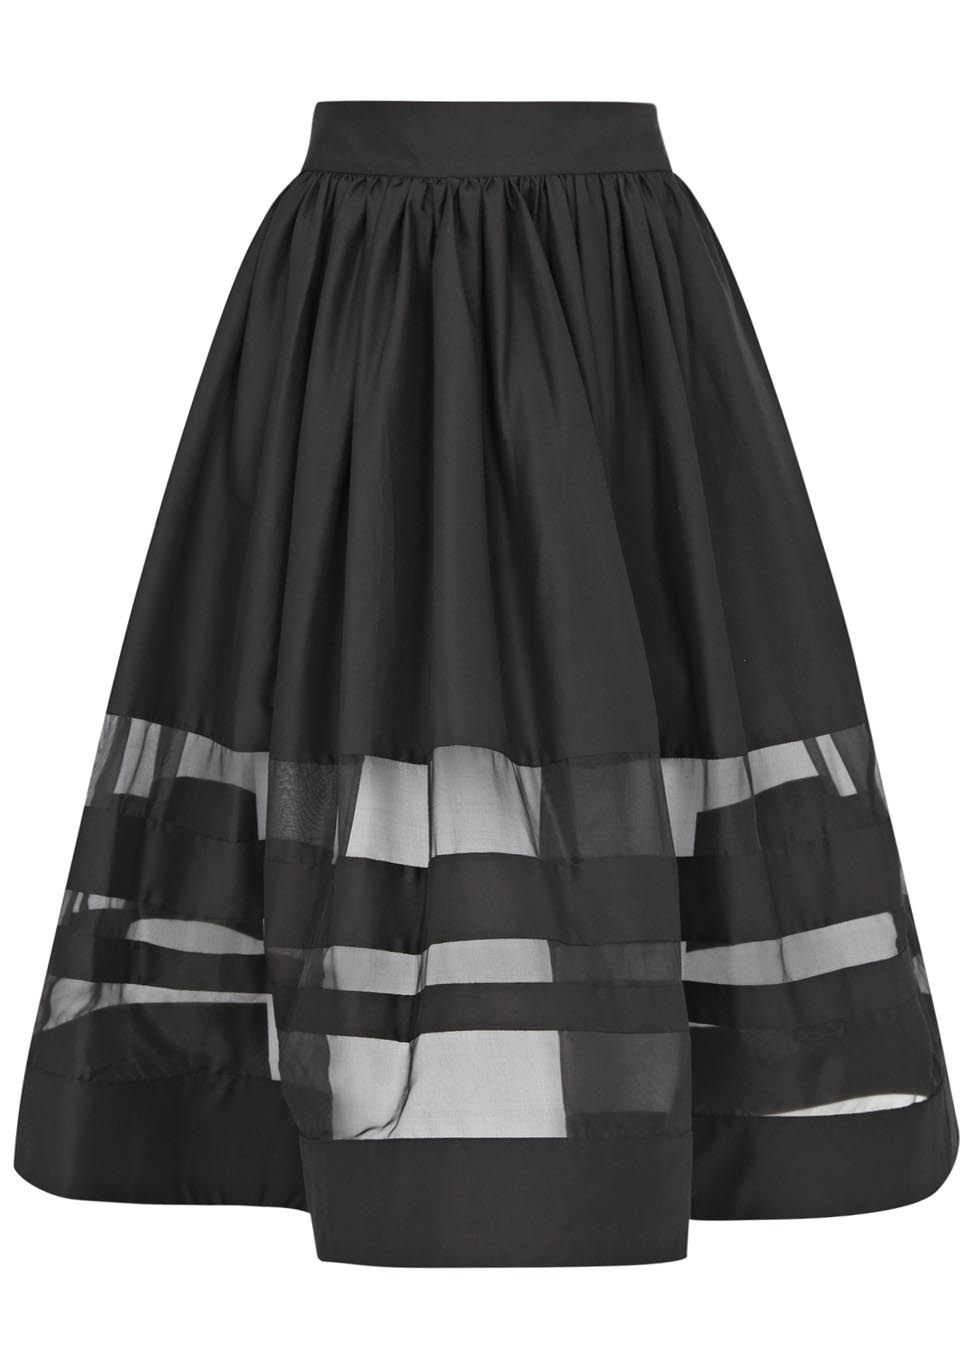 Misty Black Cotton Blend Skirt - length: below the knee; pattern: plain; style: full/prom skirt; fit: loose/voluminous; waist: high rise; predominant colour: black; fibres: cotton - mix; occasions: occasion, creative work; texture group: cotton feel fabrics; pattern type: fabric; season: s/s 2015; pattern size: standard (bottom); wardrobe: basic